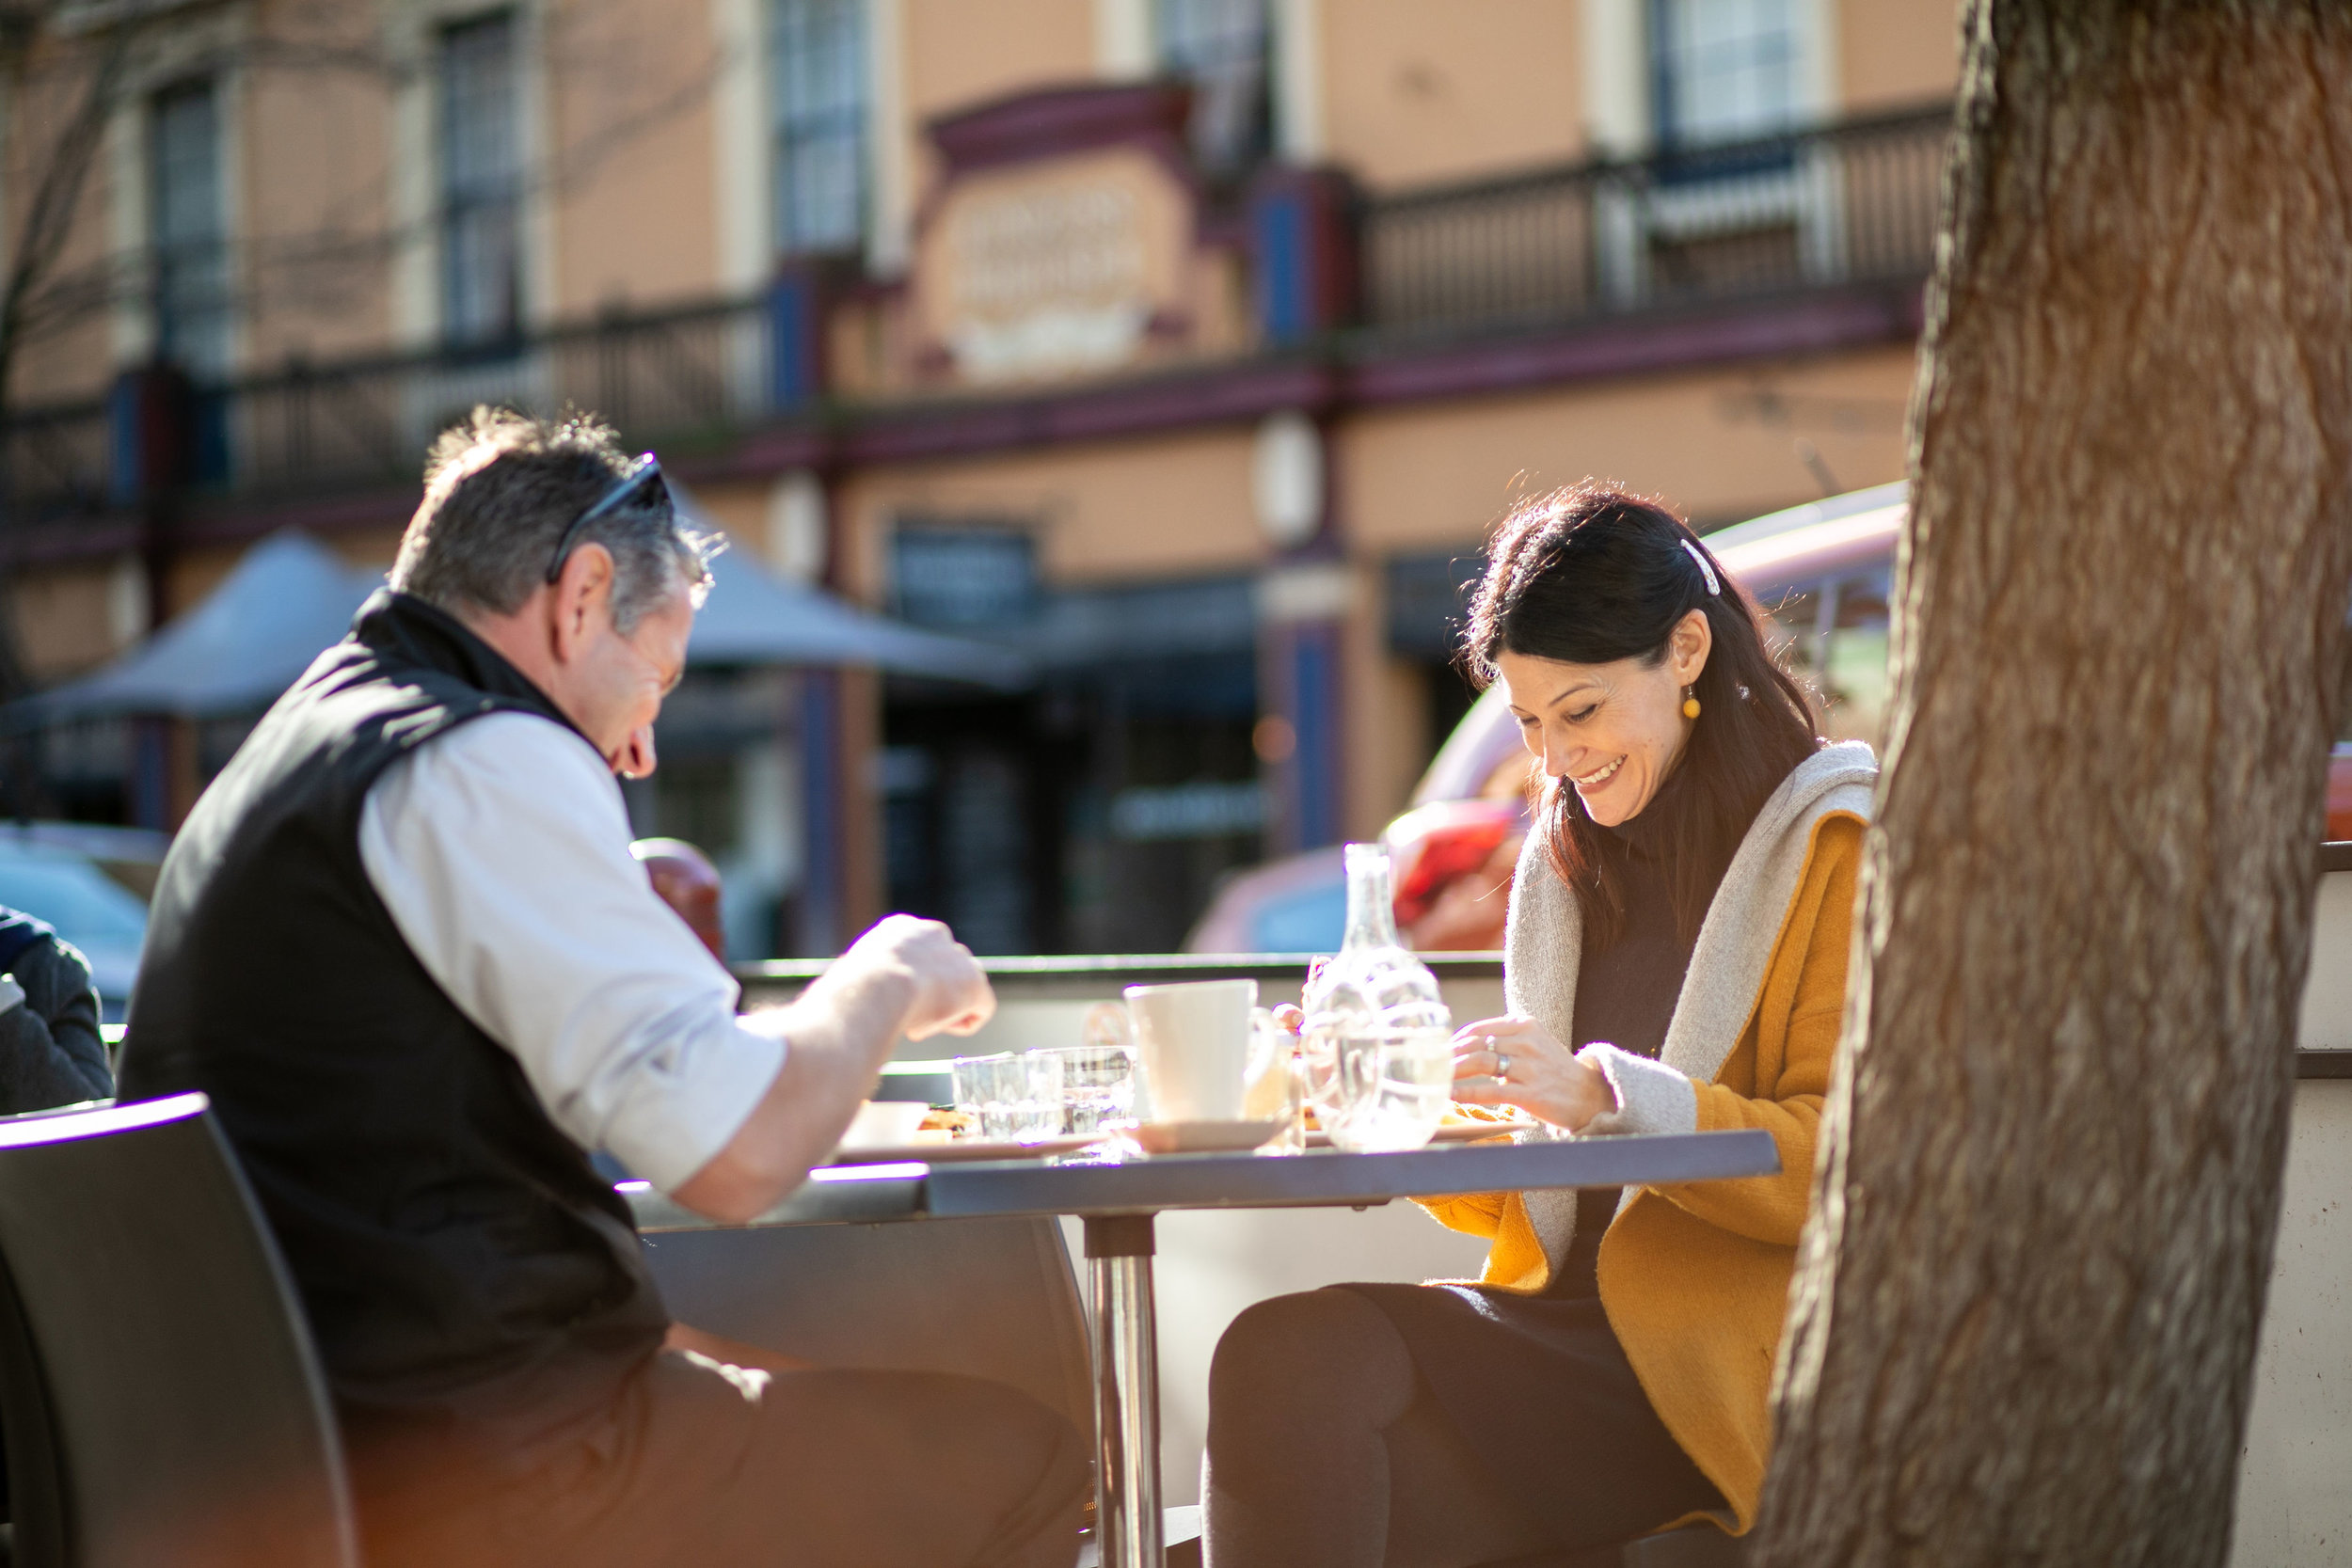 Alfresco dining, winter style on George St, Launceston. Image: Melanie de Ruyter for Winterlicious 2019.